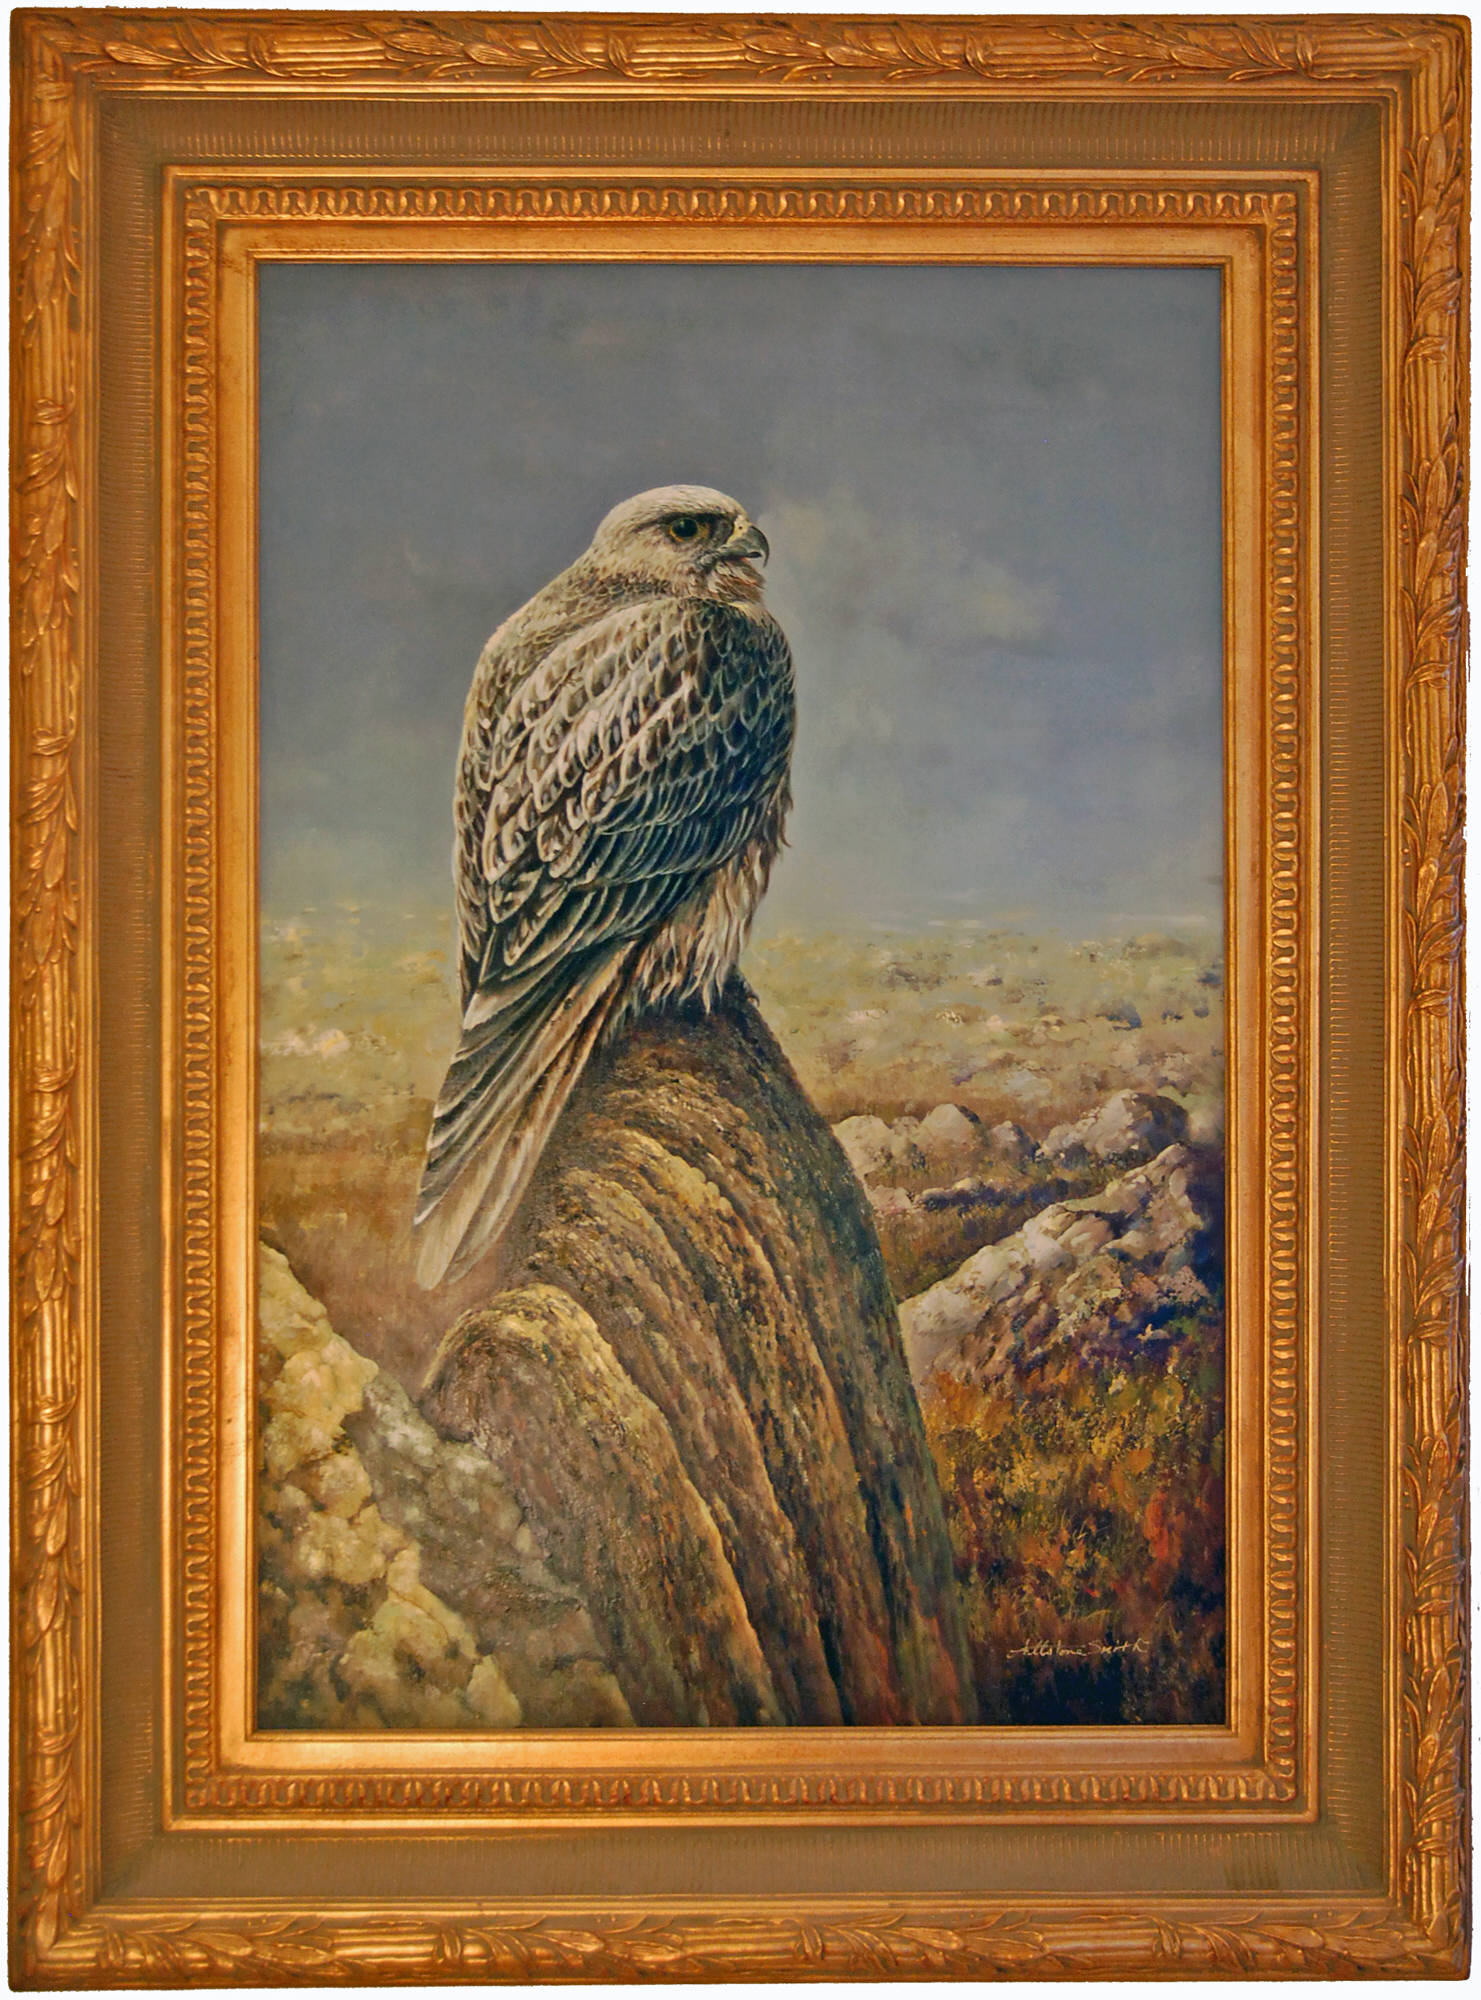 Allstone Smith. Falcon sitting on top of mountain. Size of picture 24-inch x 36-inch. Sold framed 35-inch x 47-inch. $3,995.